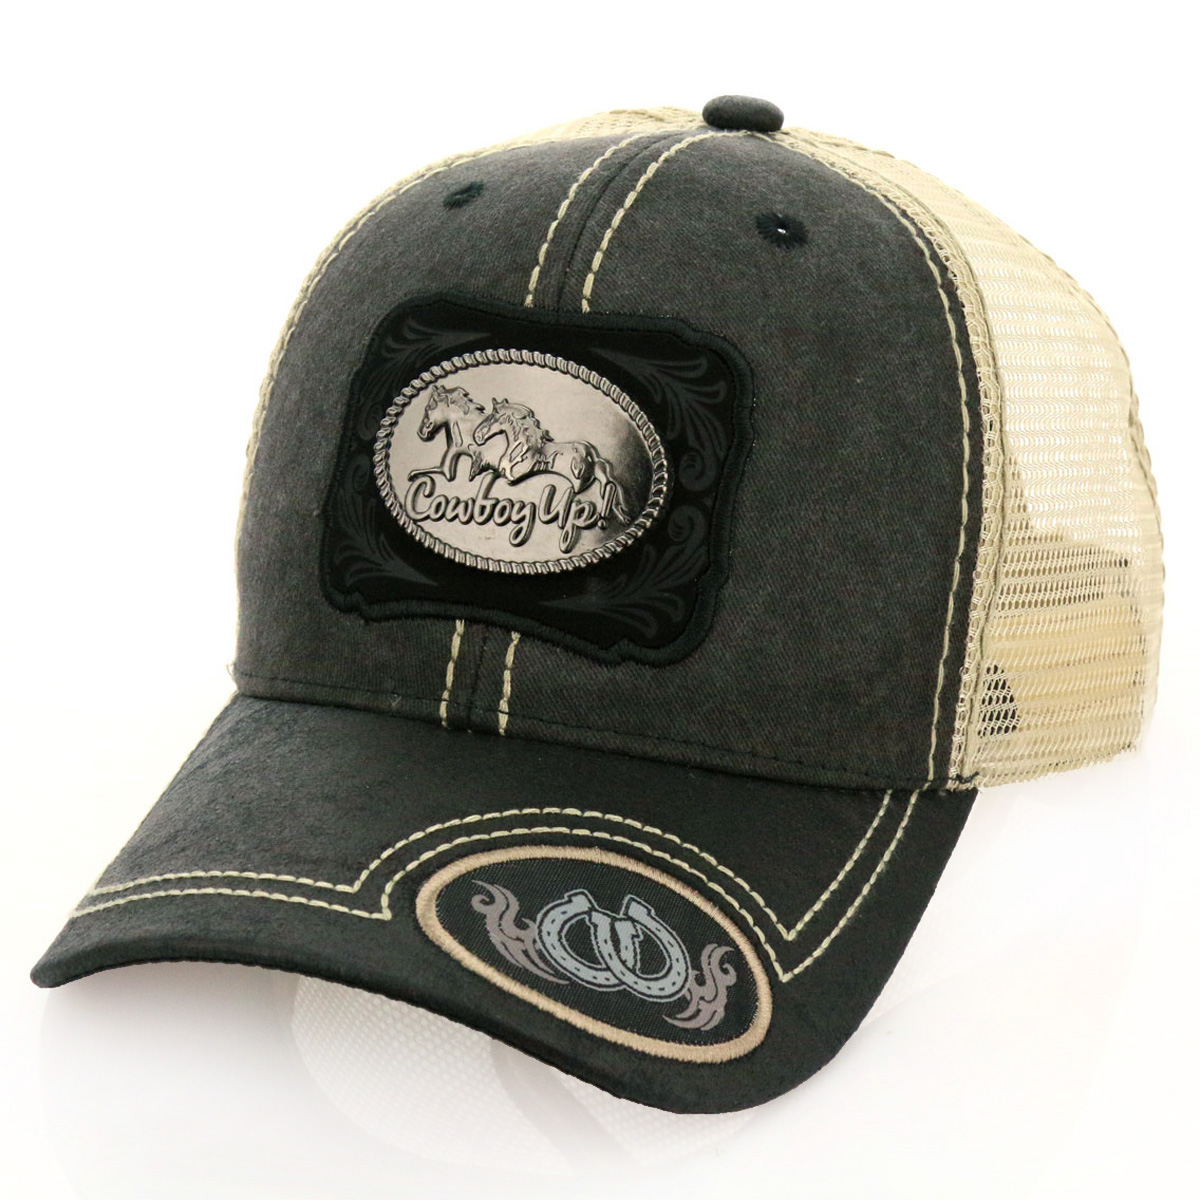 Pitbull Cowboy Up! Patch Metal Cotton Vintage Mesh Ball Cap-PB-115/GRY